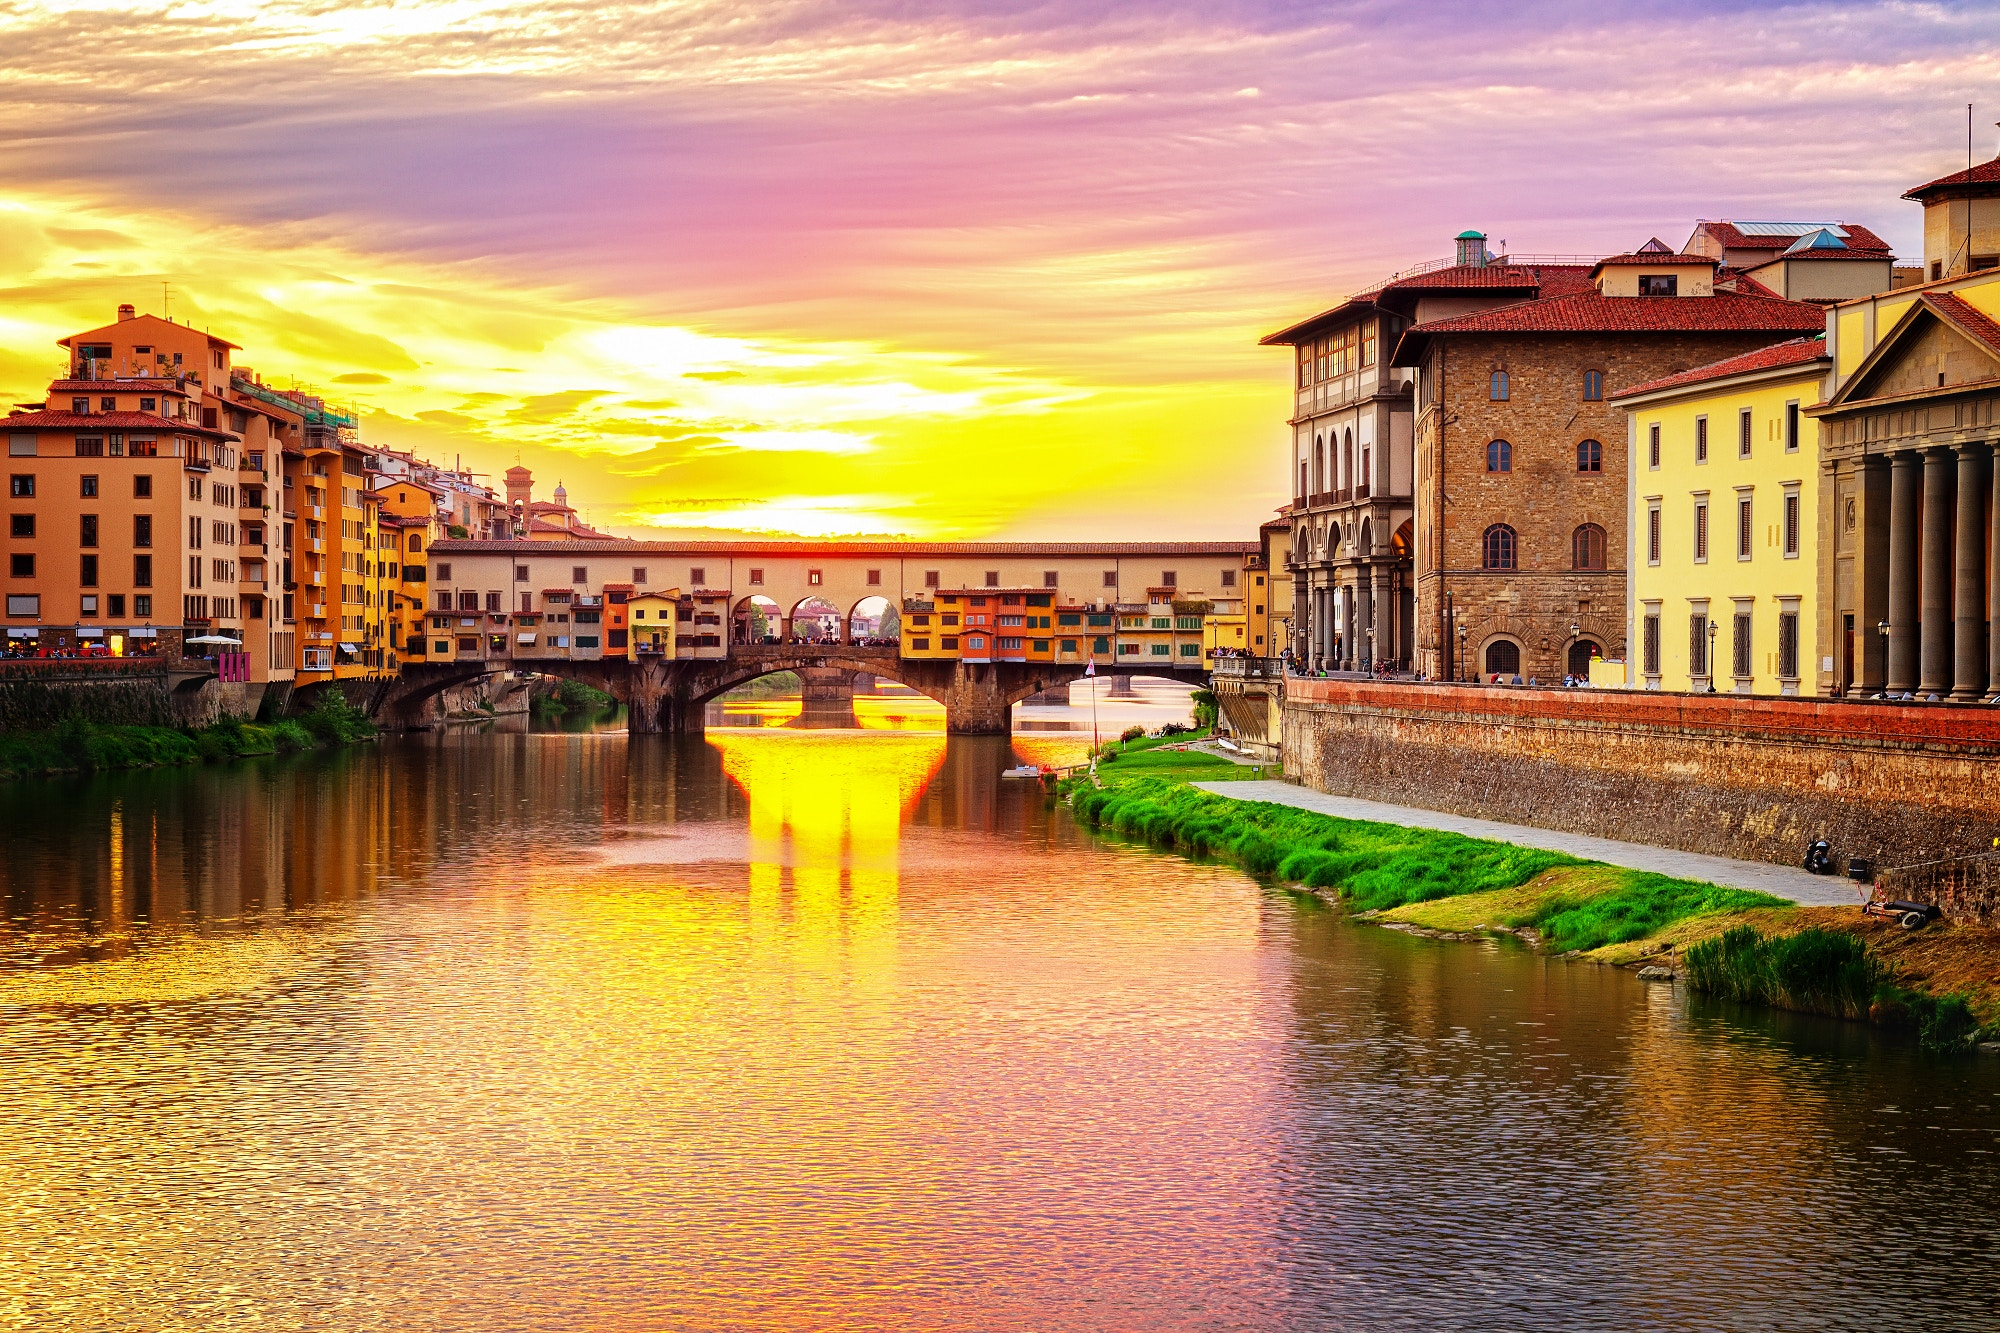 The Ponet Vecchio bridge in Florence, Italy © Food Travel Stockforlife / Shutterstock